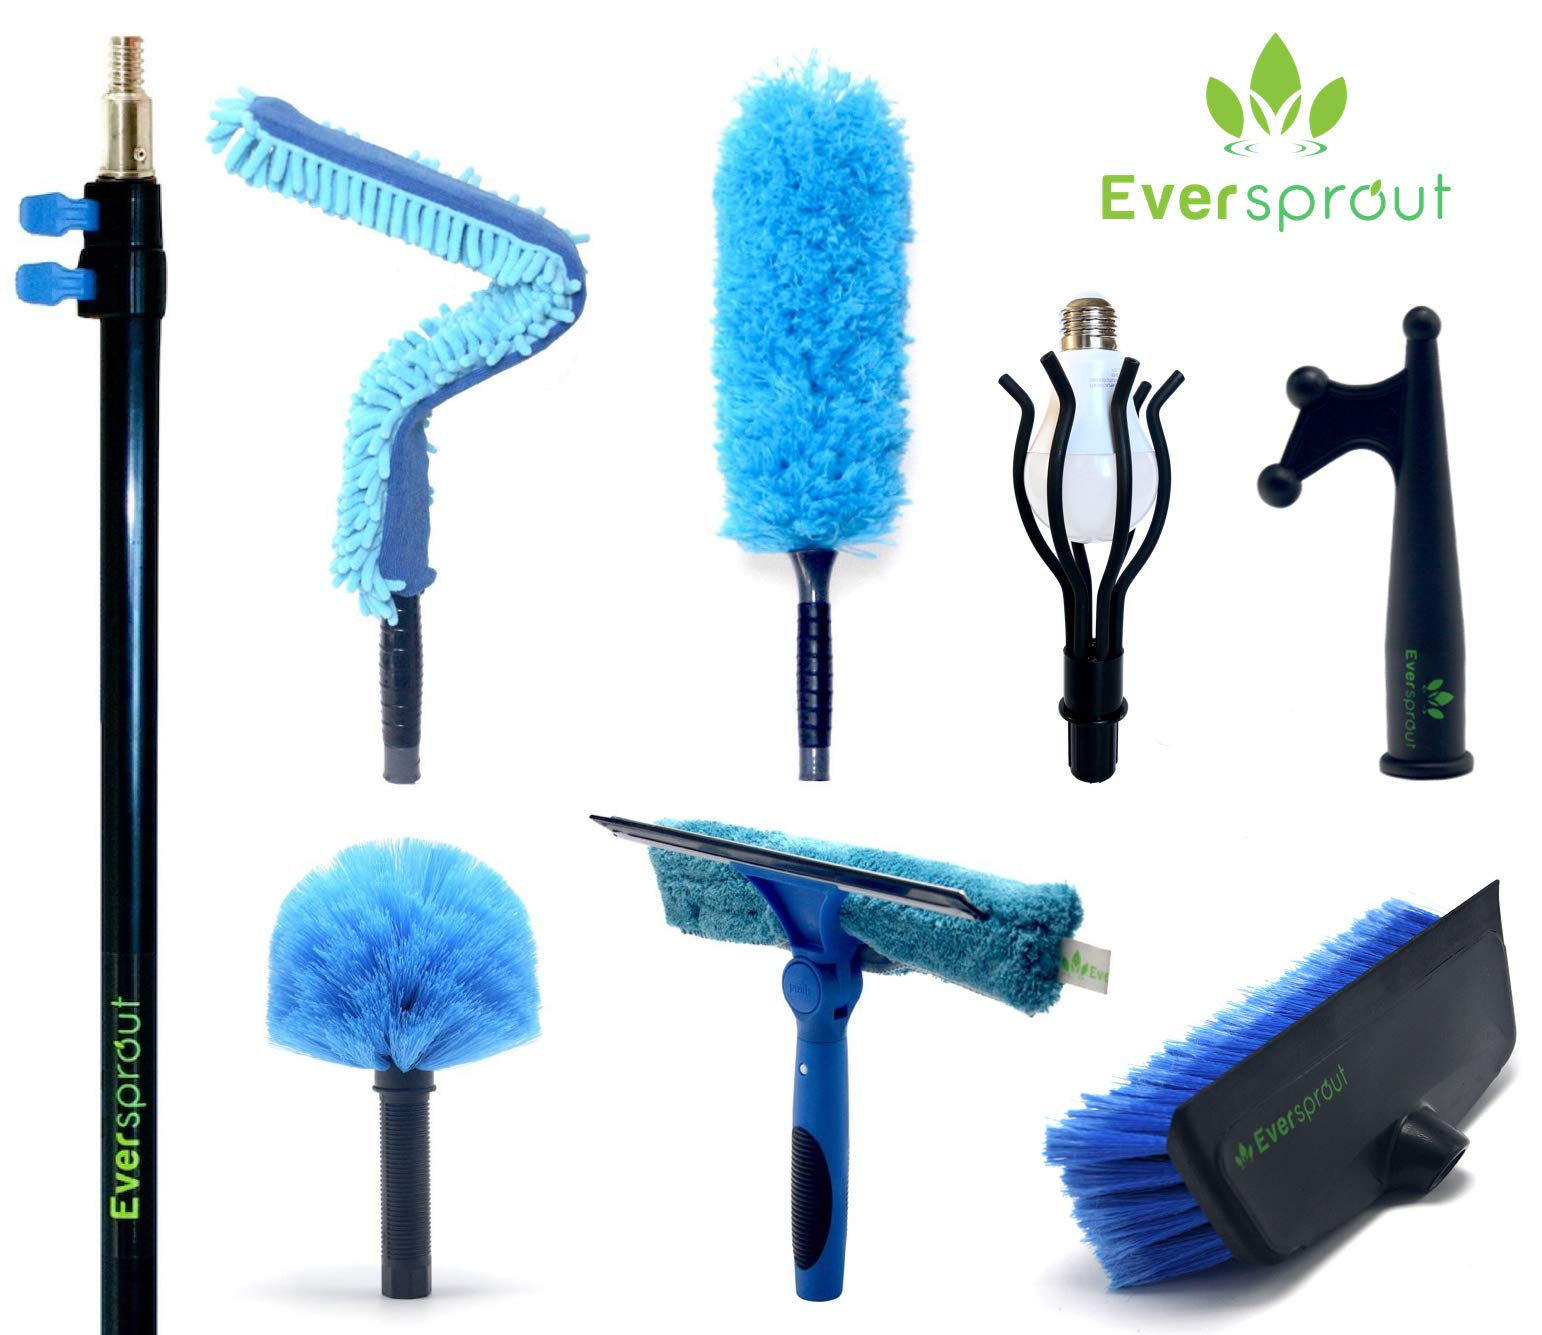 EVERSPROUT Extension Pole Total Kit (25+ Foot Reach) | Telescopic Pole, Scrub Brush, Light Bulb Changer, Utility Hook, Swivel Squeegee, 3X Microfiber Dusters (Cobweb, Flexible Ceiling Fan, Feather)